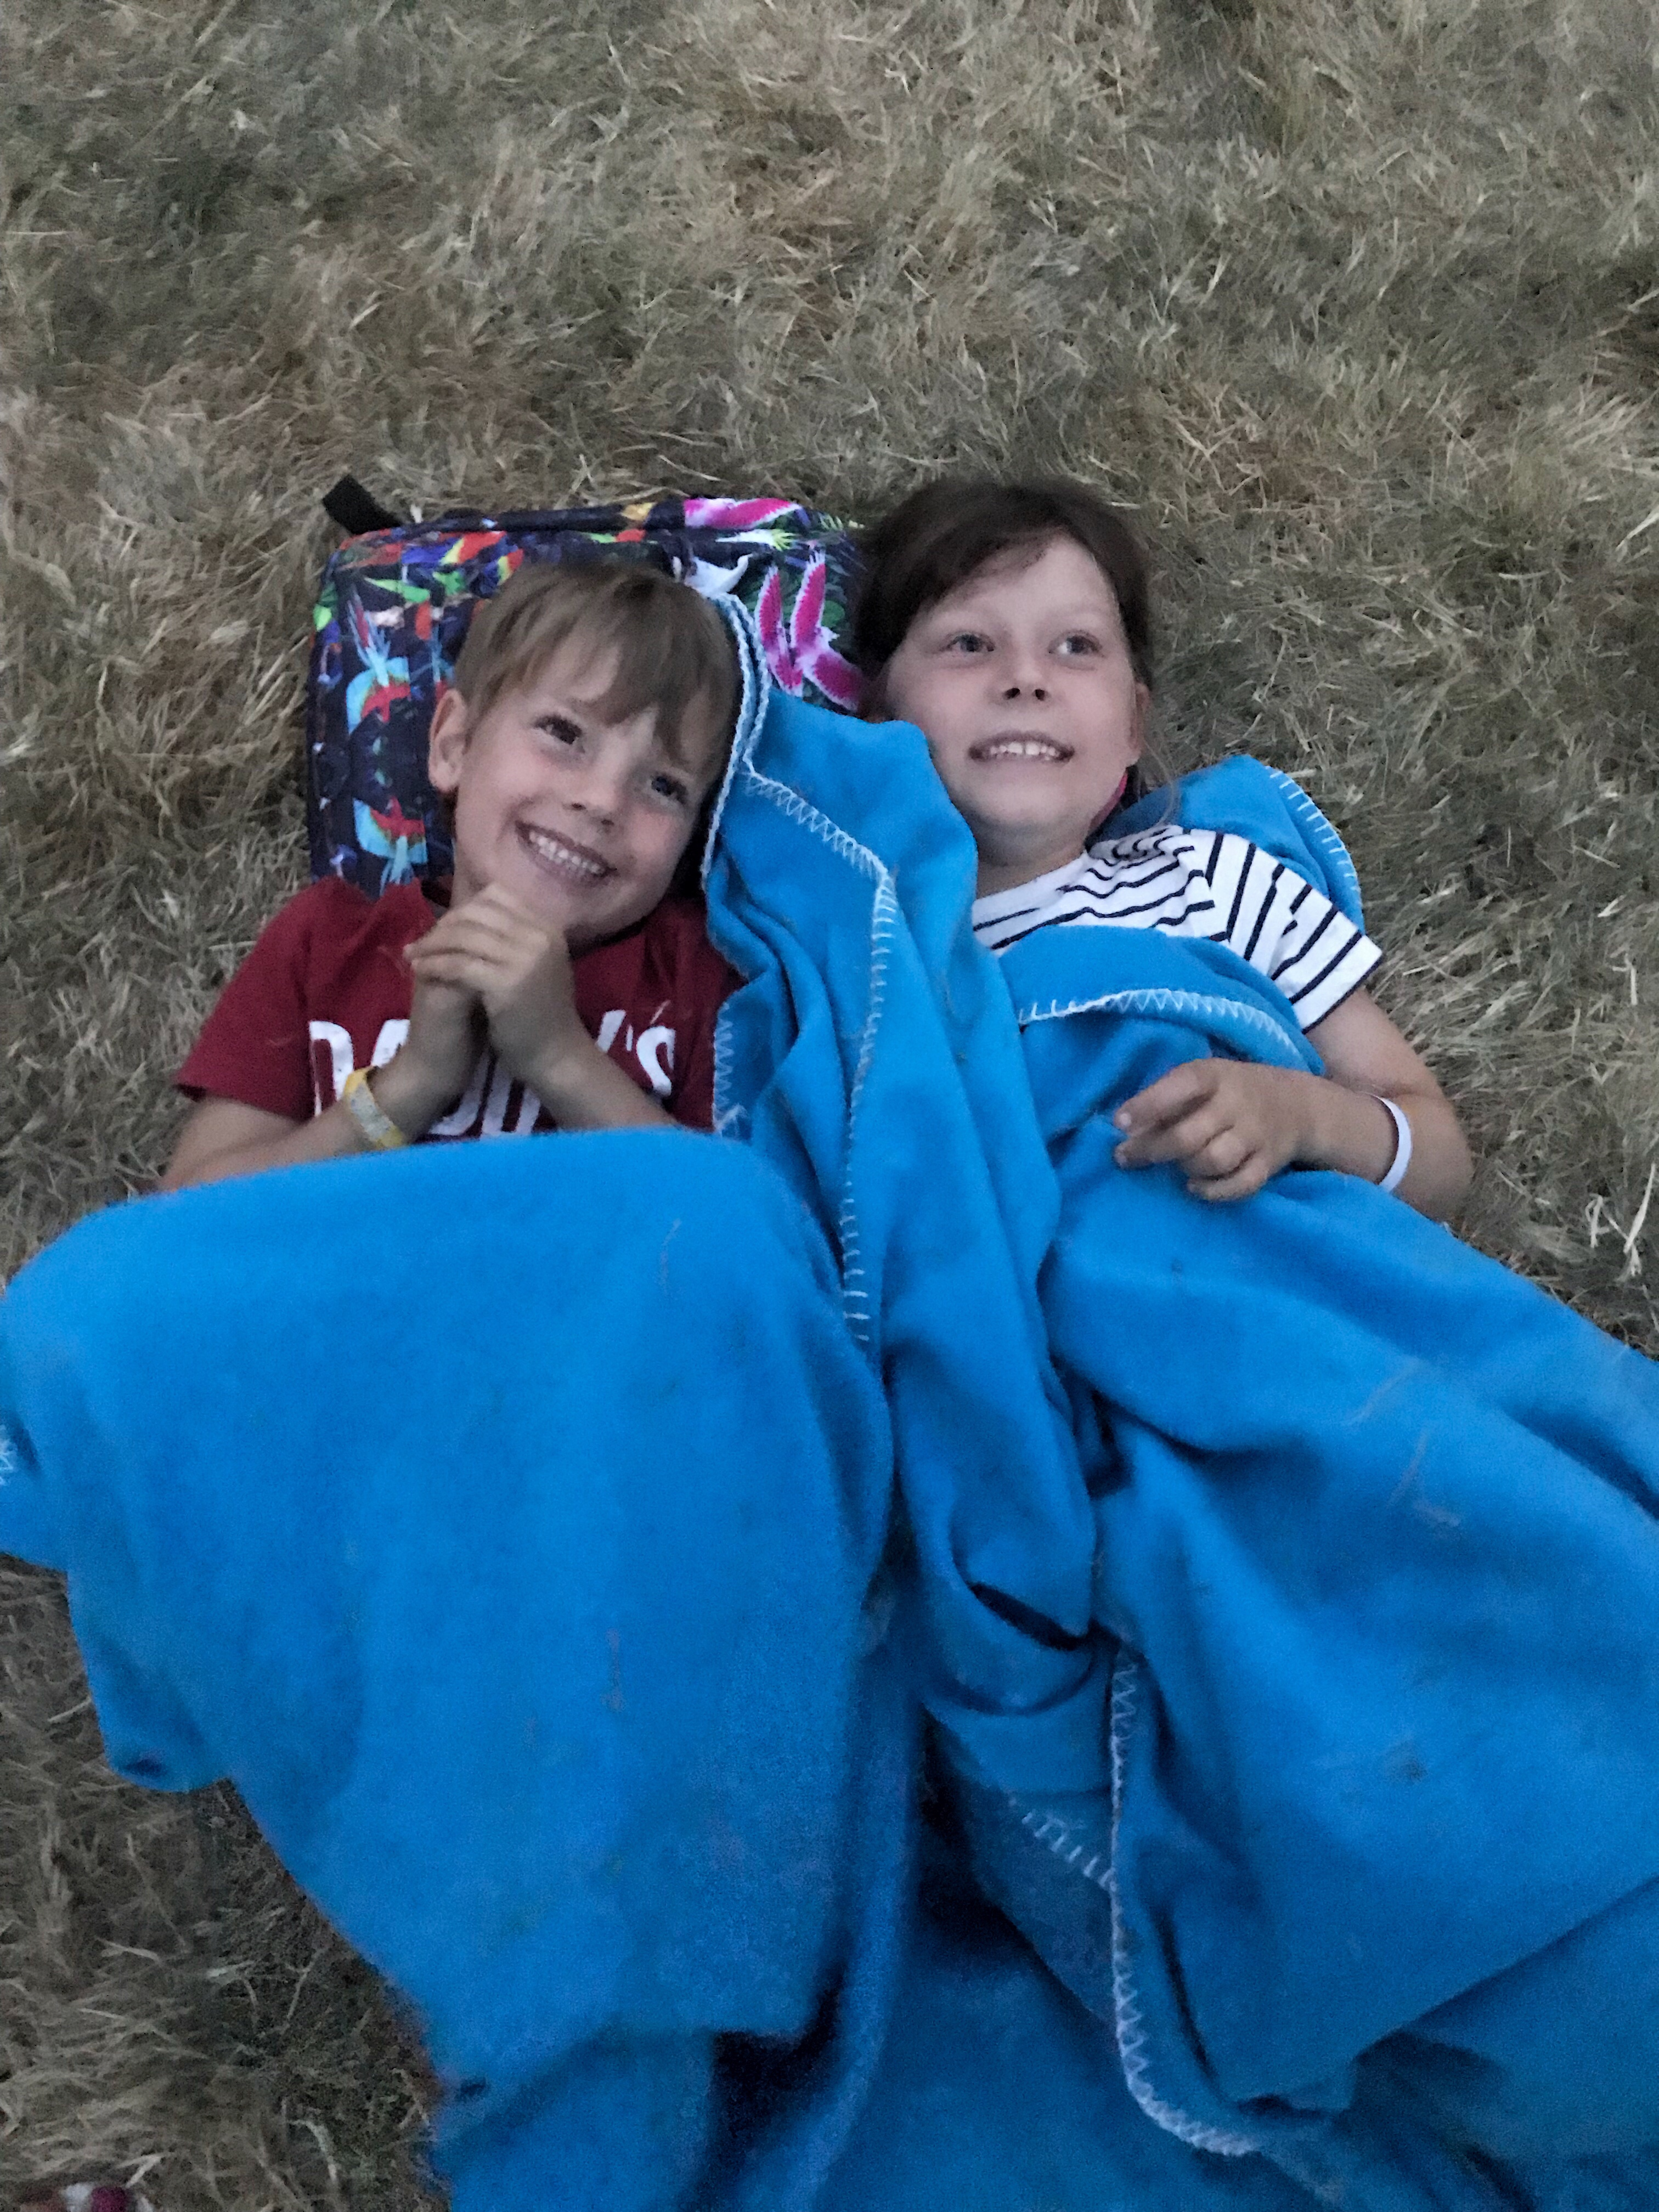 My two children snuggled in a blanket at dusk waiting for Alanis Morissette.